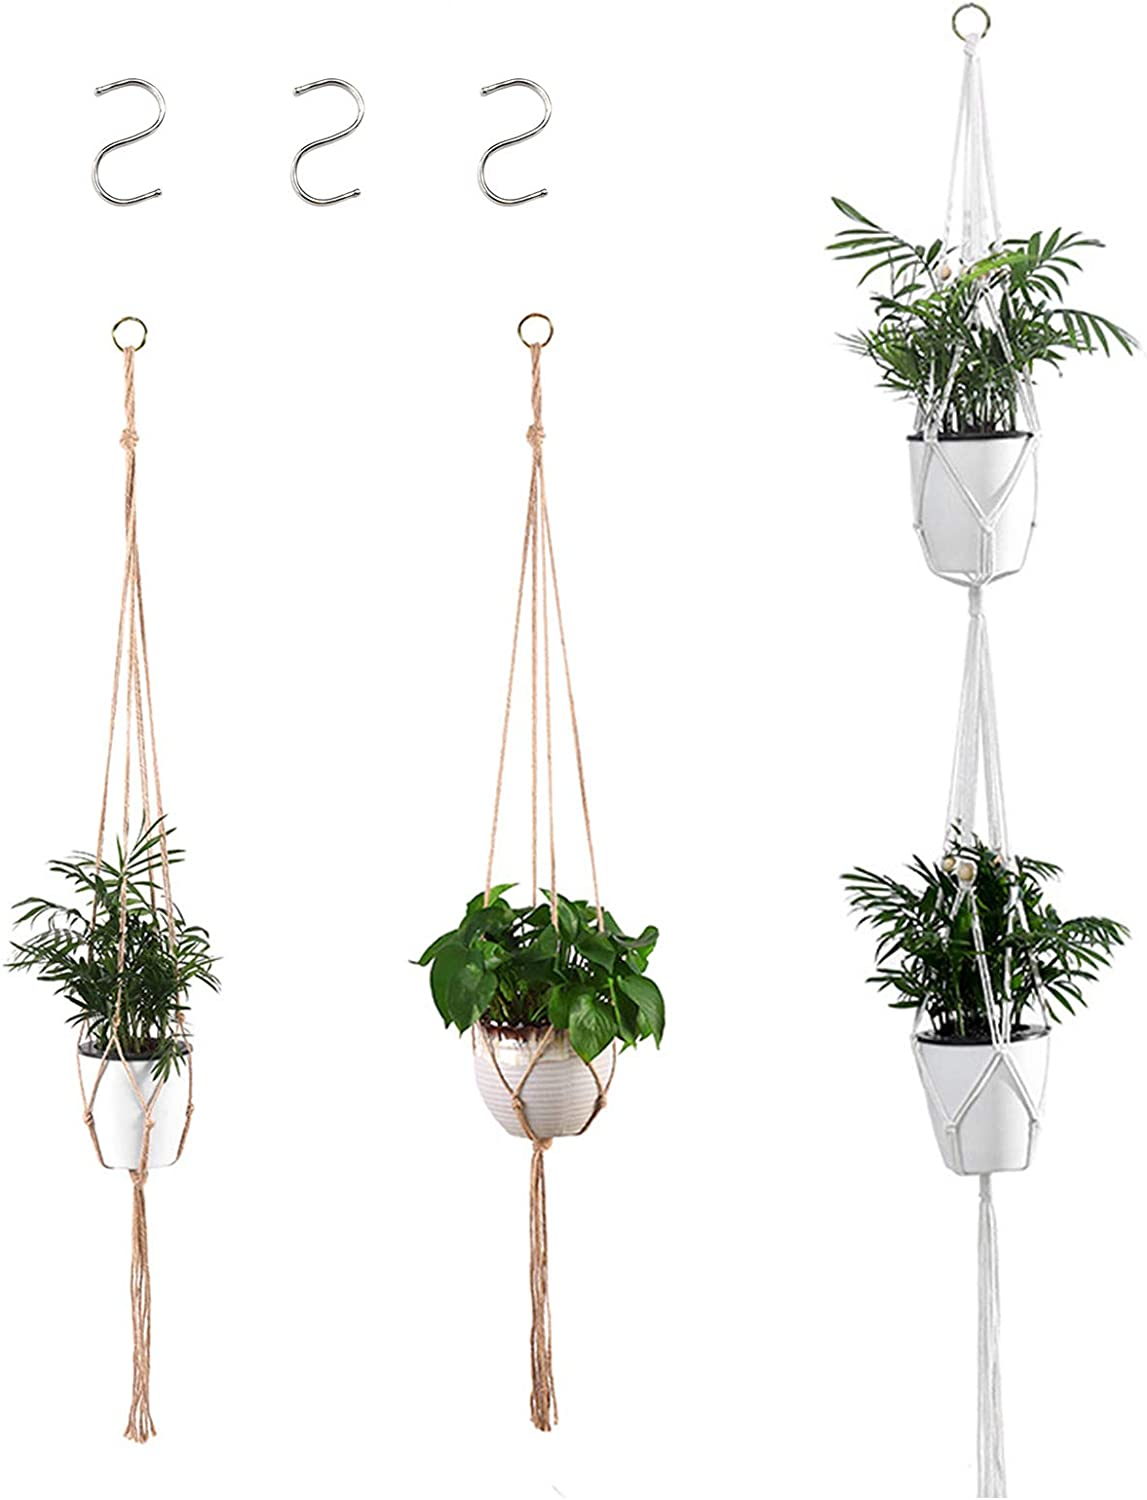 Hanging Plants for Bedroom Decor Indoor Hanging Planters,Hanging Planters  Macrame Boho Chic Cotton Rope,20Pcs Hanging Pot Holder for Indoor and  Outdoor ...